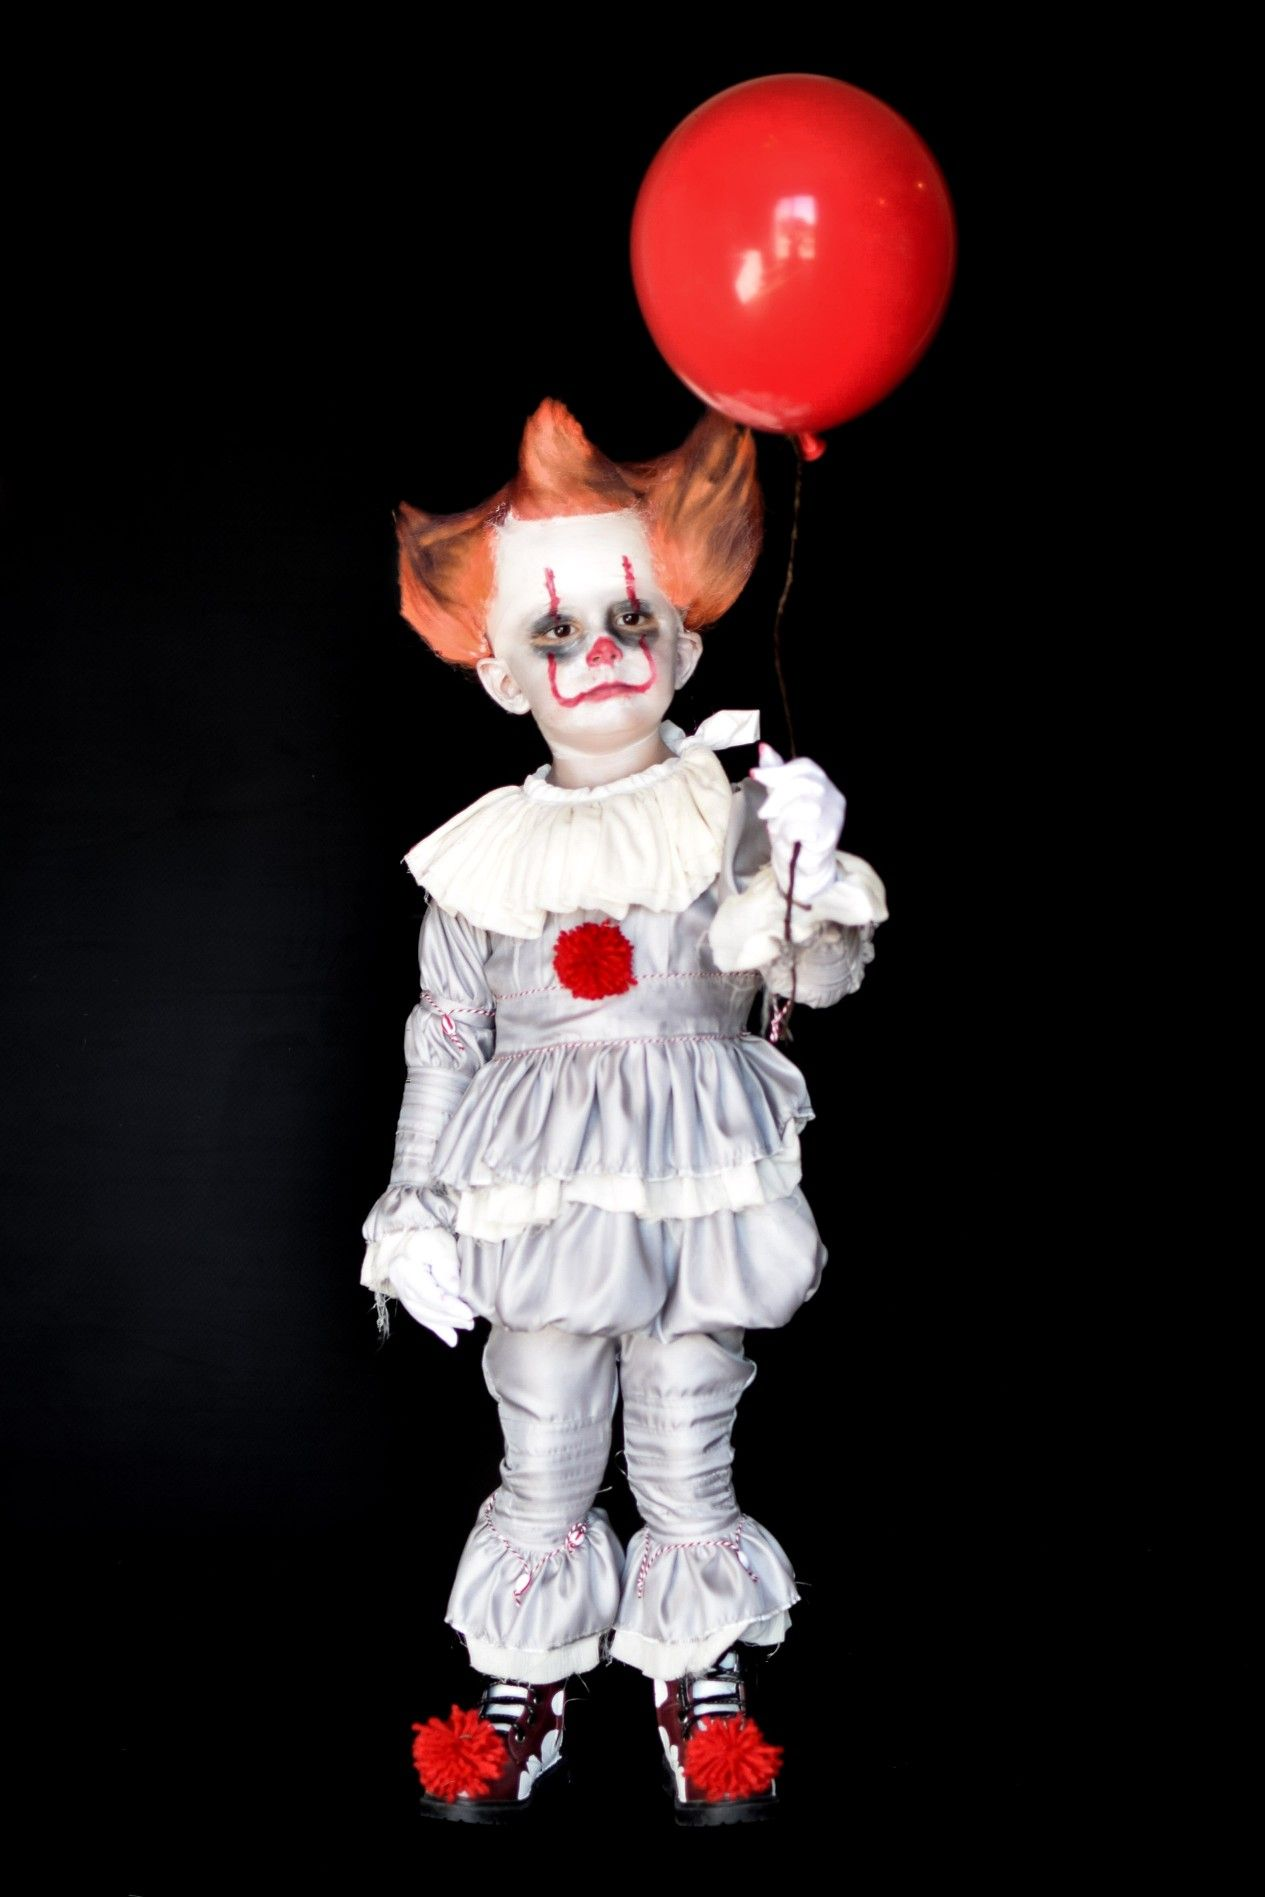 3 year old turns into pennywise clown from the movie it toddler boy halloween costume diy halloween toddler costume pennywise boy it itmovie